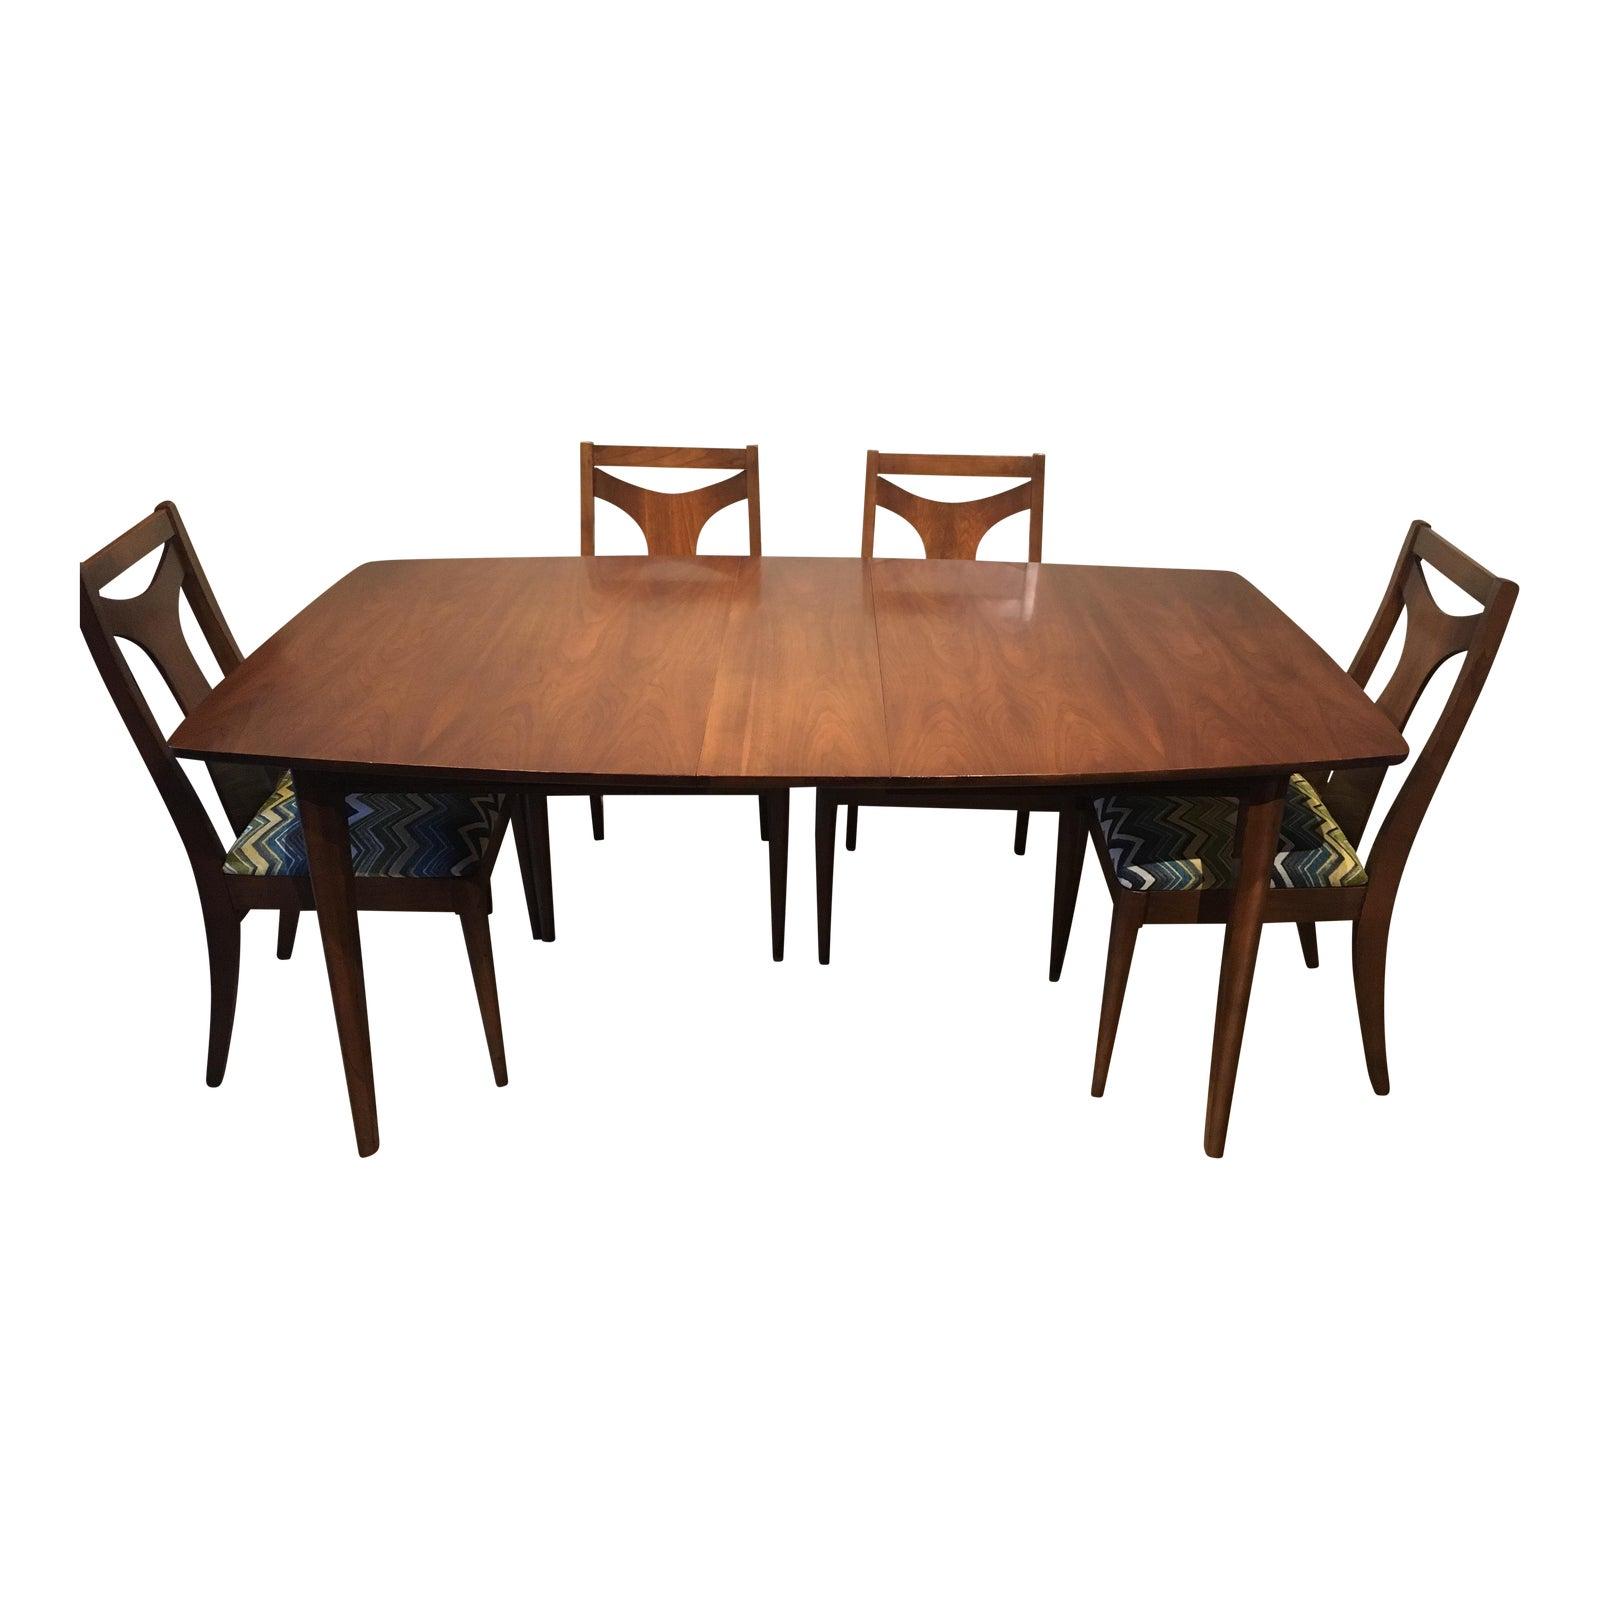 Vintage Mid-Century Dining Table and Chairs- 5 Pieces